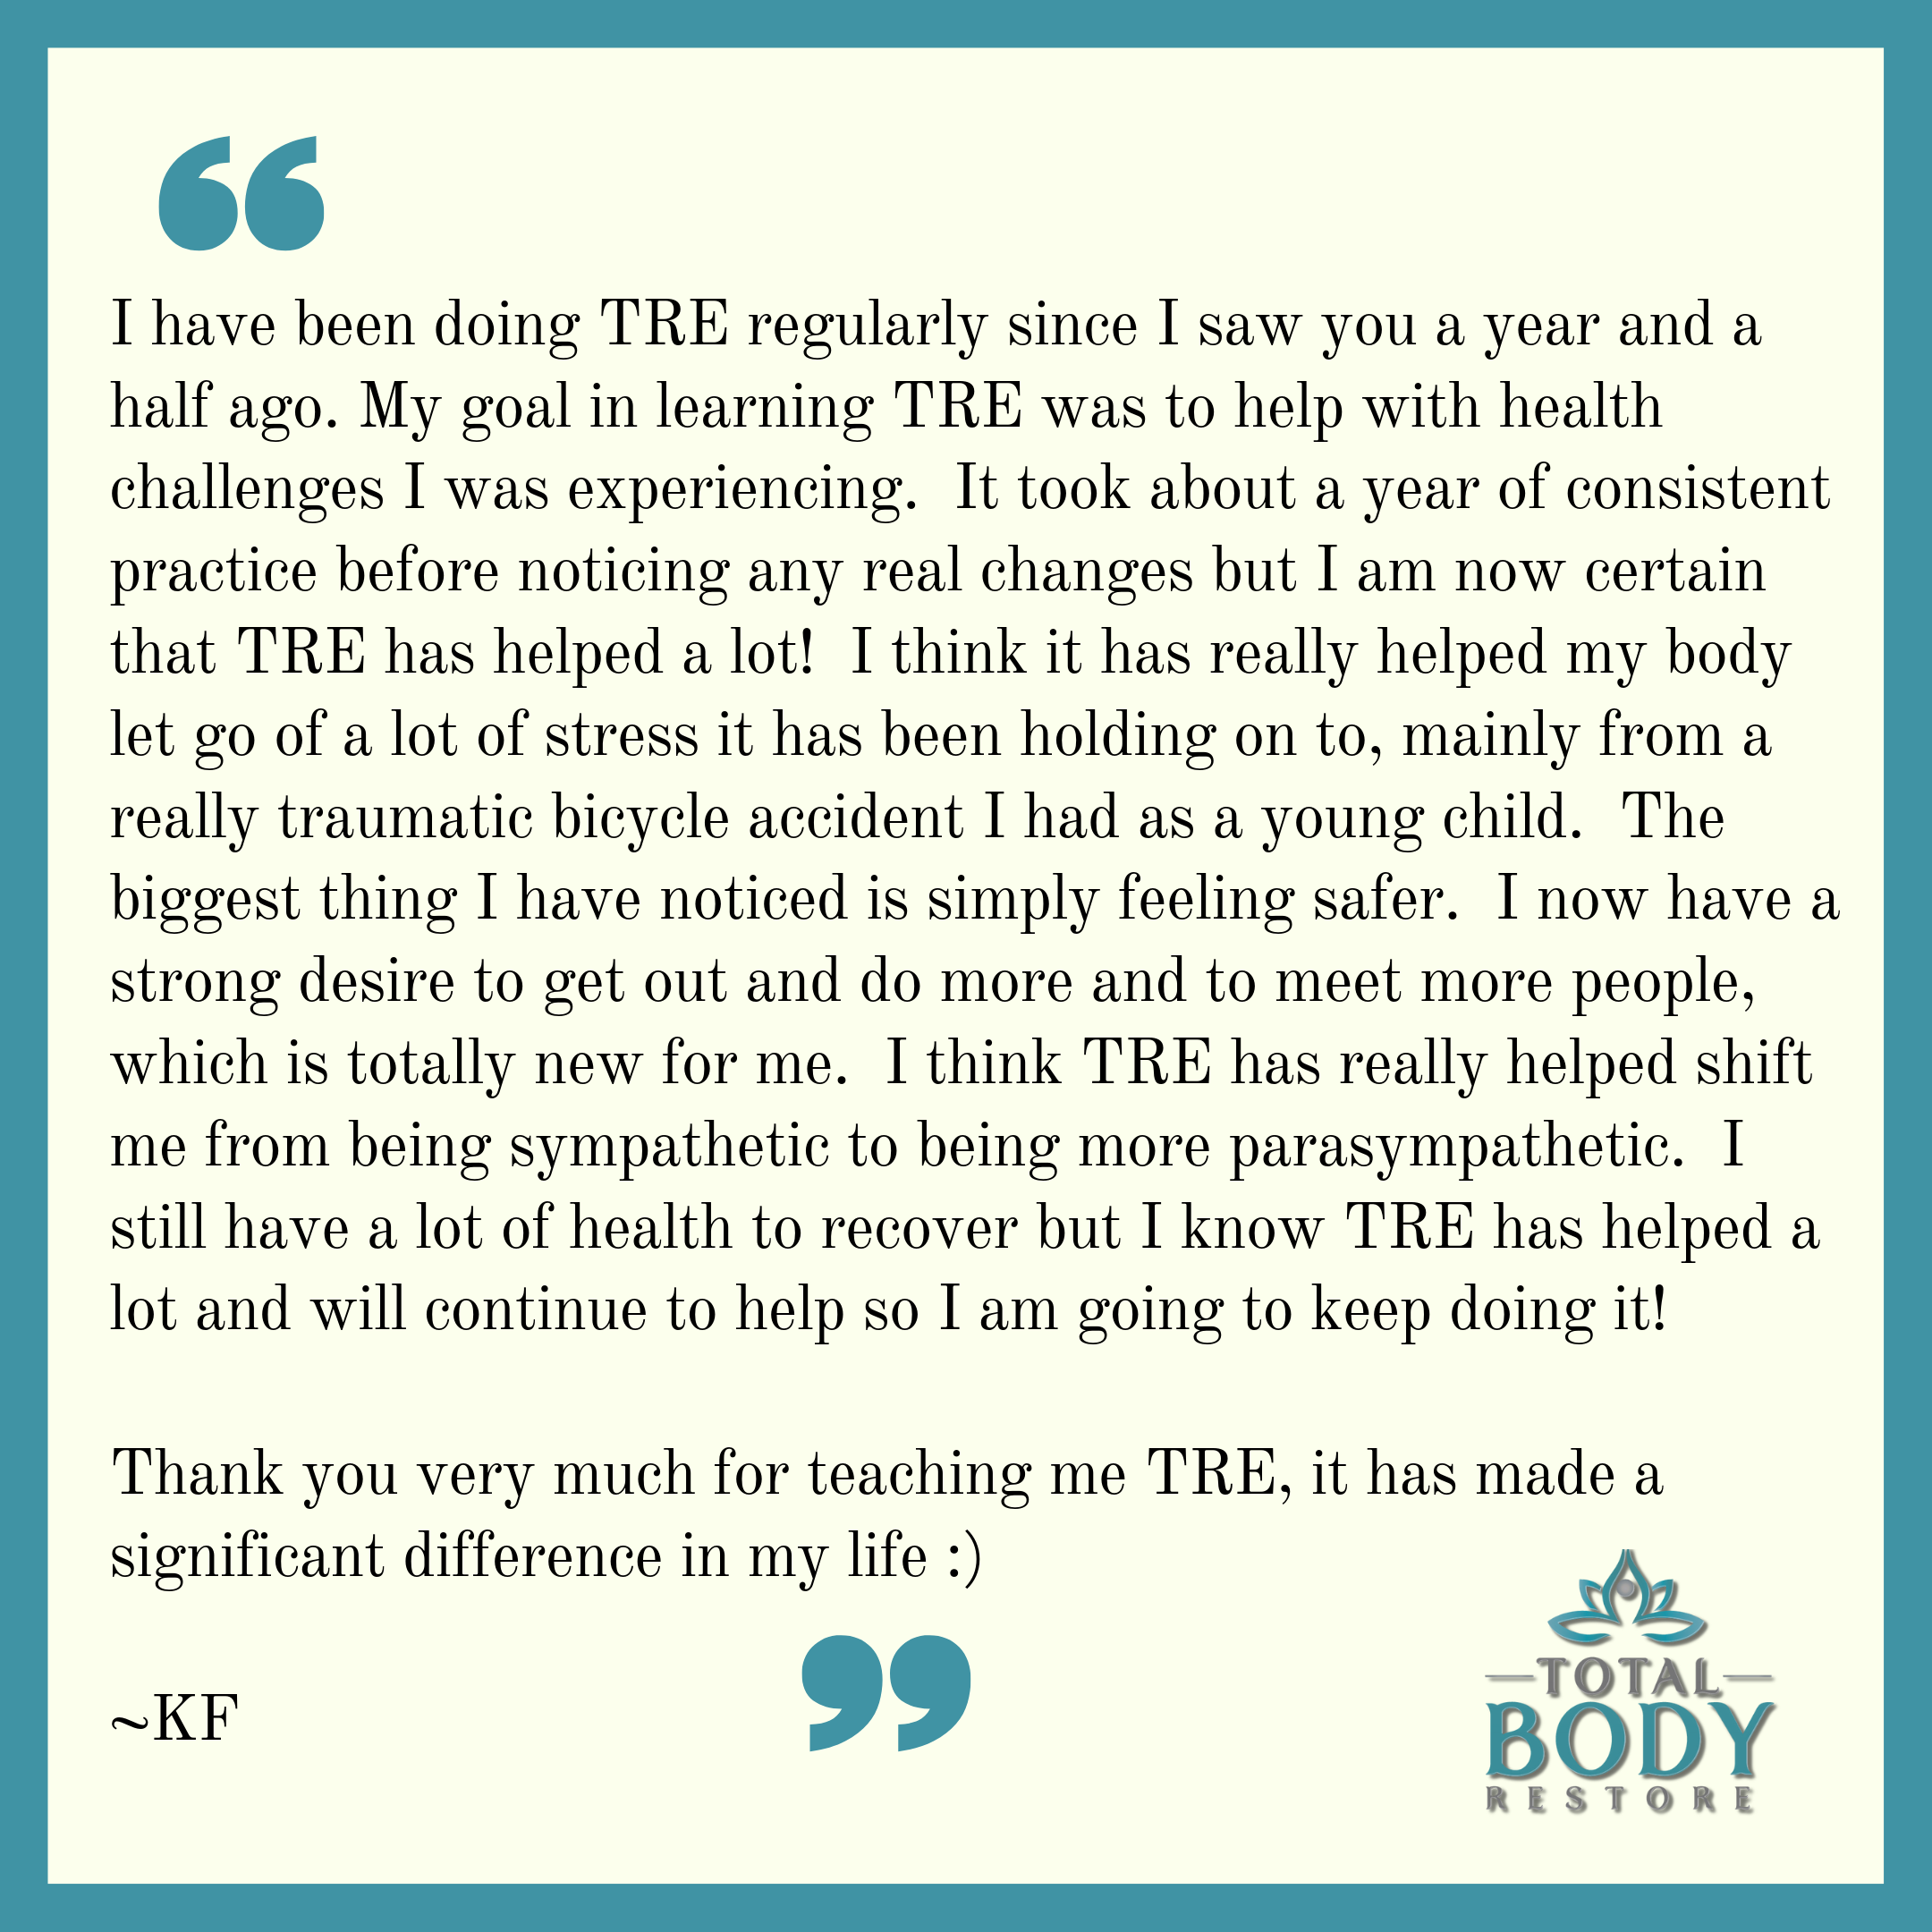 I have been doing TRE regularly since I saw you a year and a half ago (or however long ago it was). My goal in learning TRE was to help with health challenges I was experiencing. It took about a year of consiste (3).png